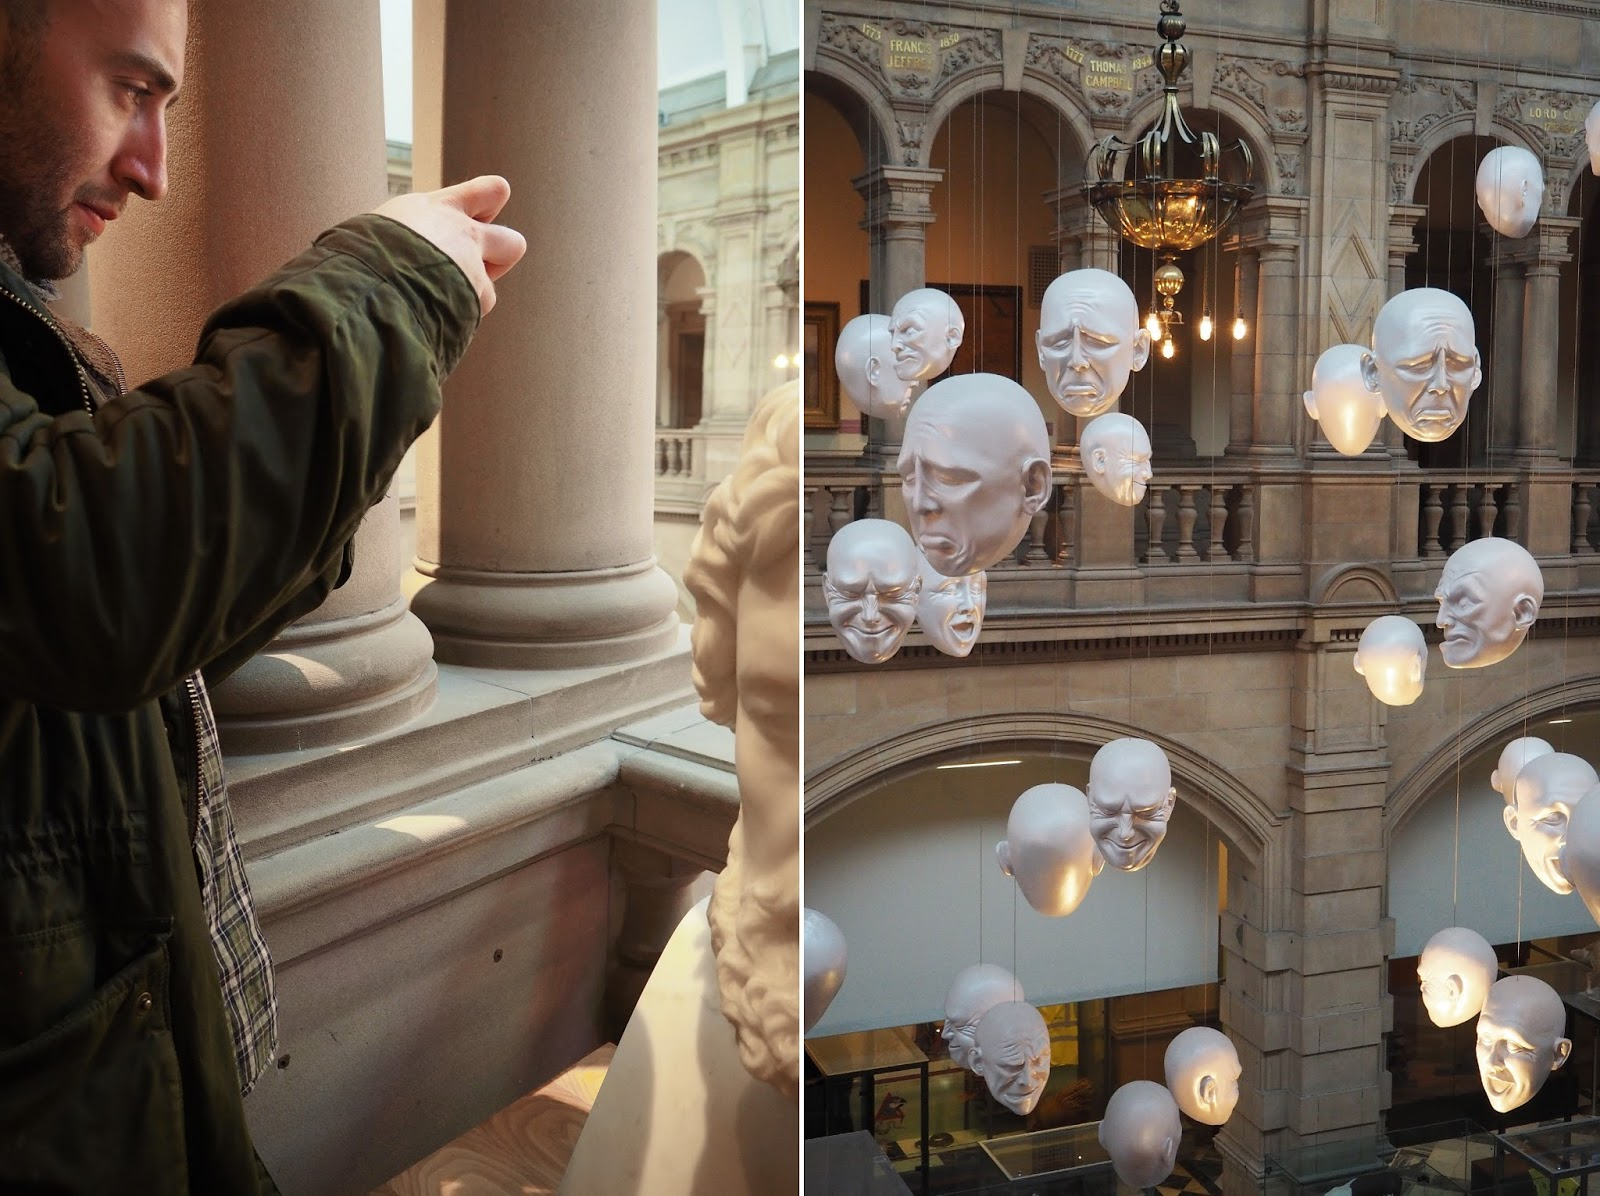 Things to see at the Kelvingrove Museum